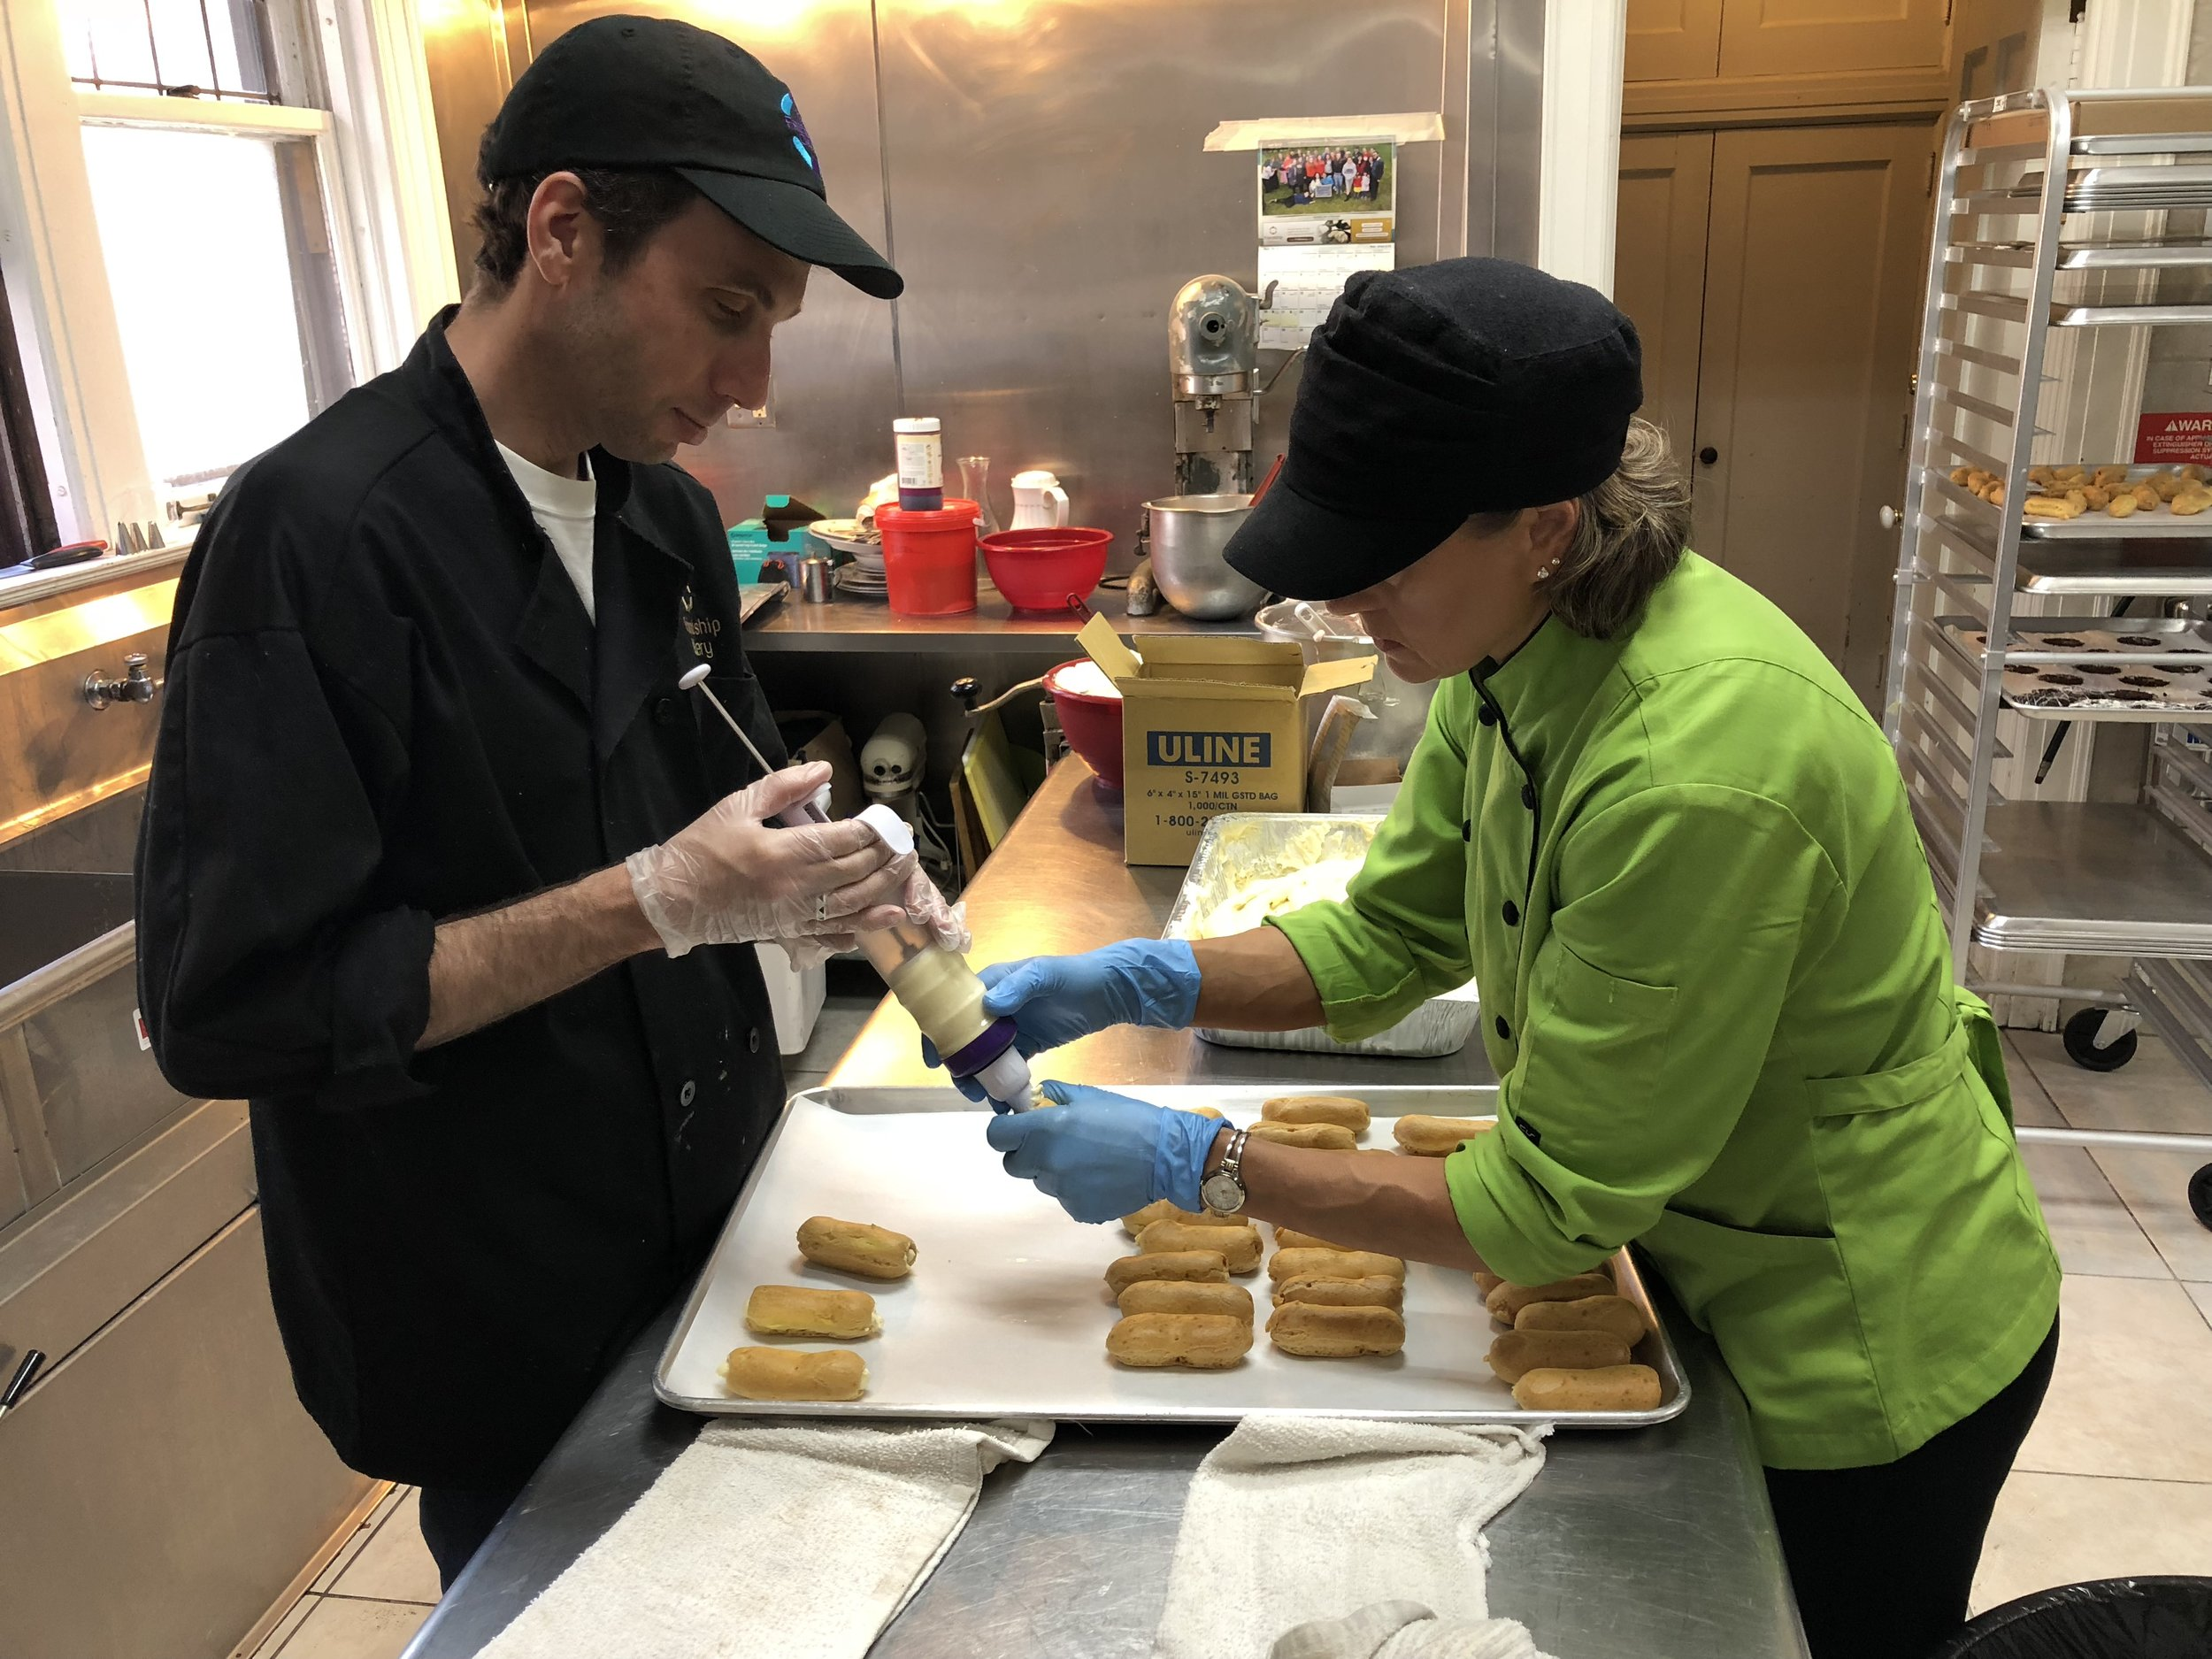 Filling Eclairs with the help of Chef Dina